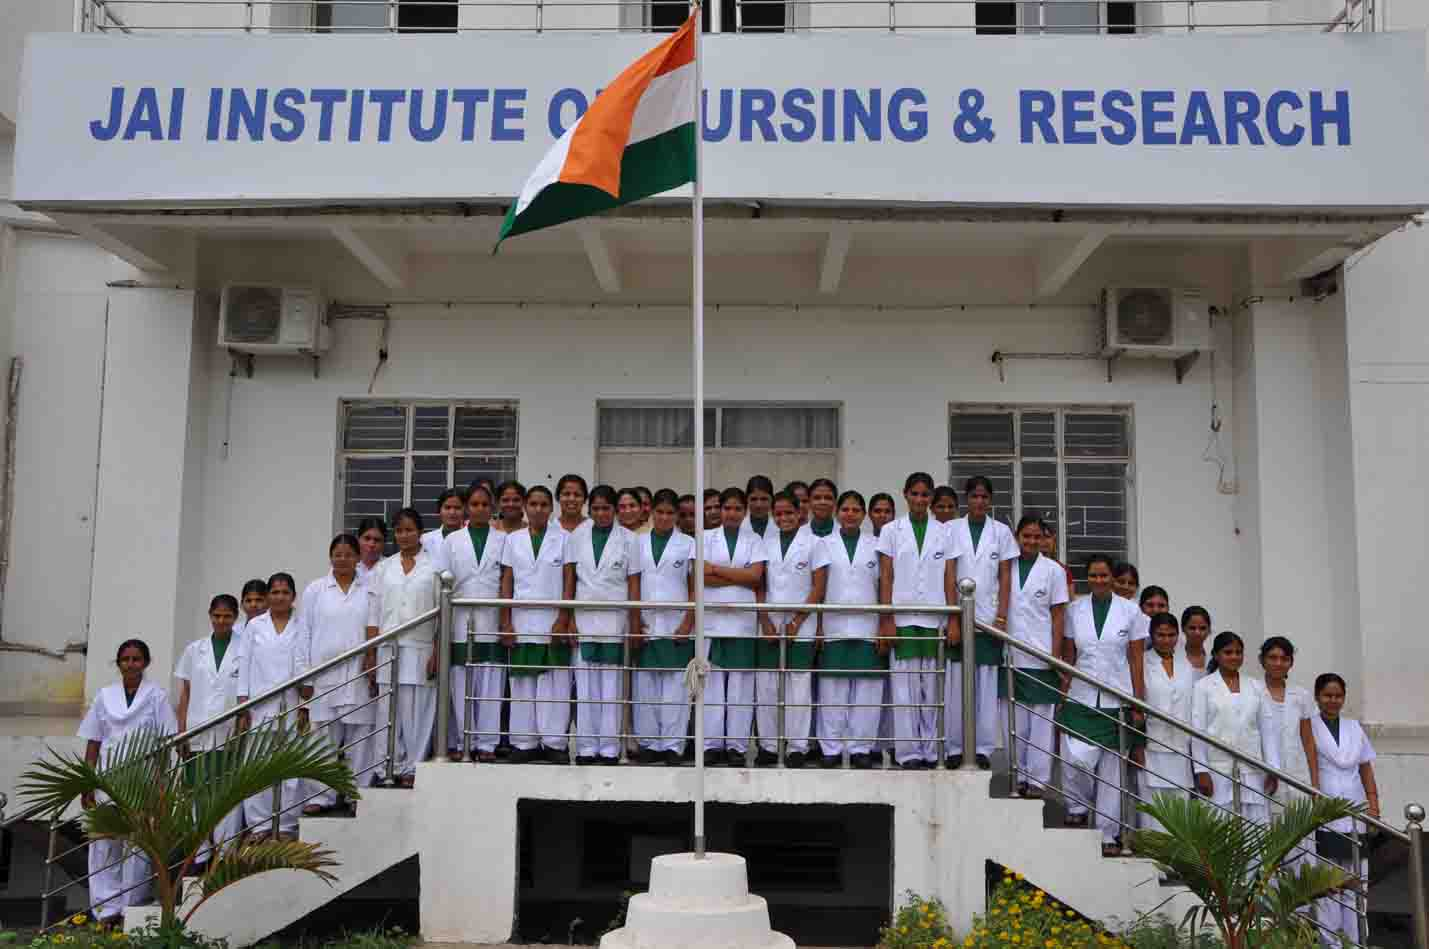 Jai Institute of Nursing and Research - JINR, Gwalior Image